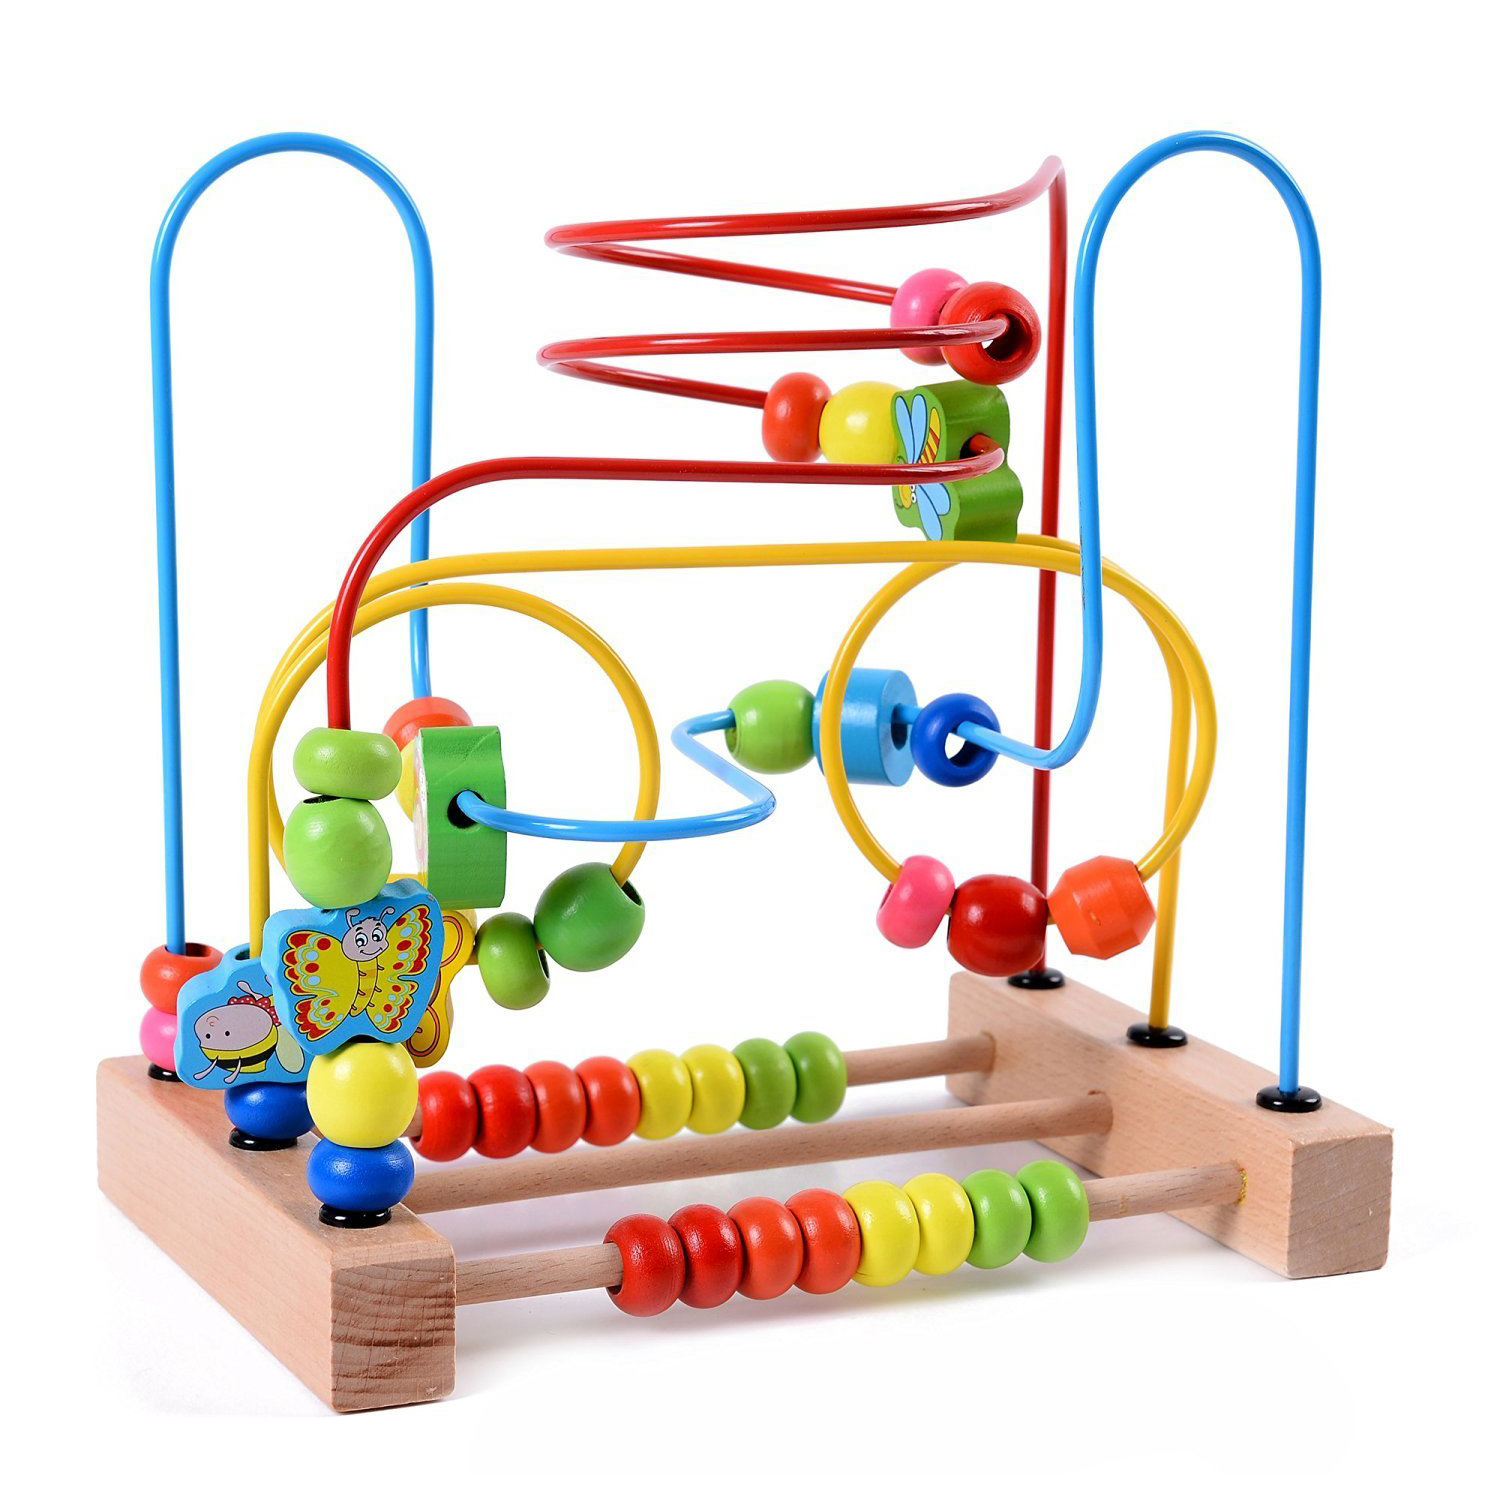 baby toys bead maze Colorful Wooden Toys Education ...